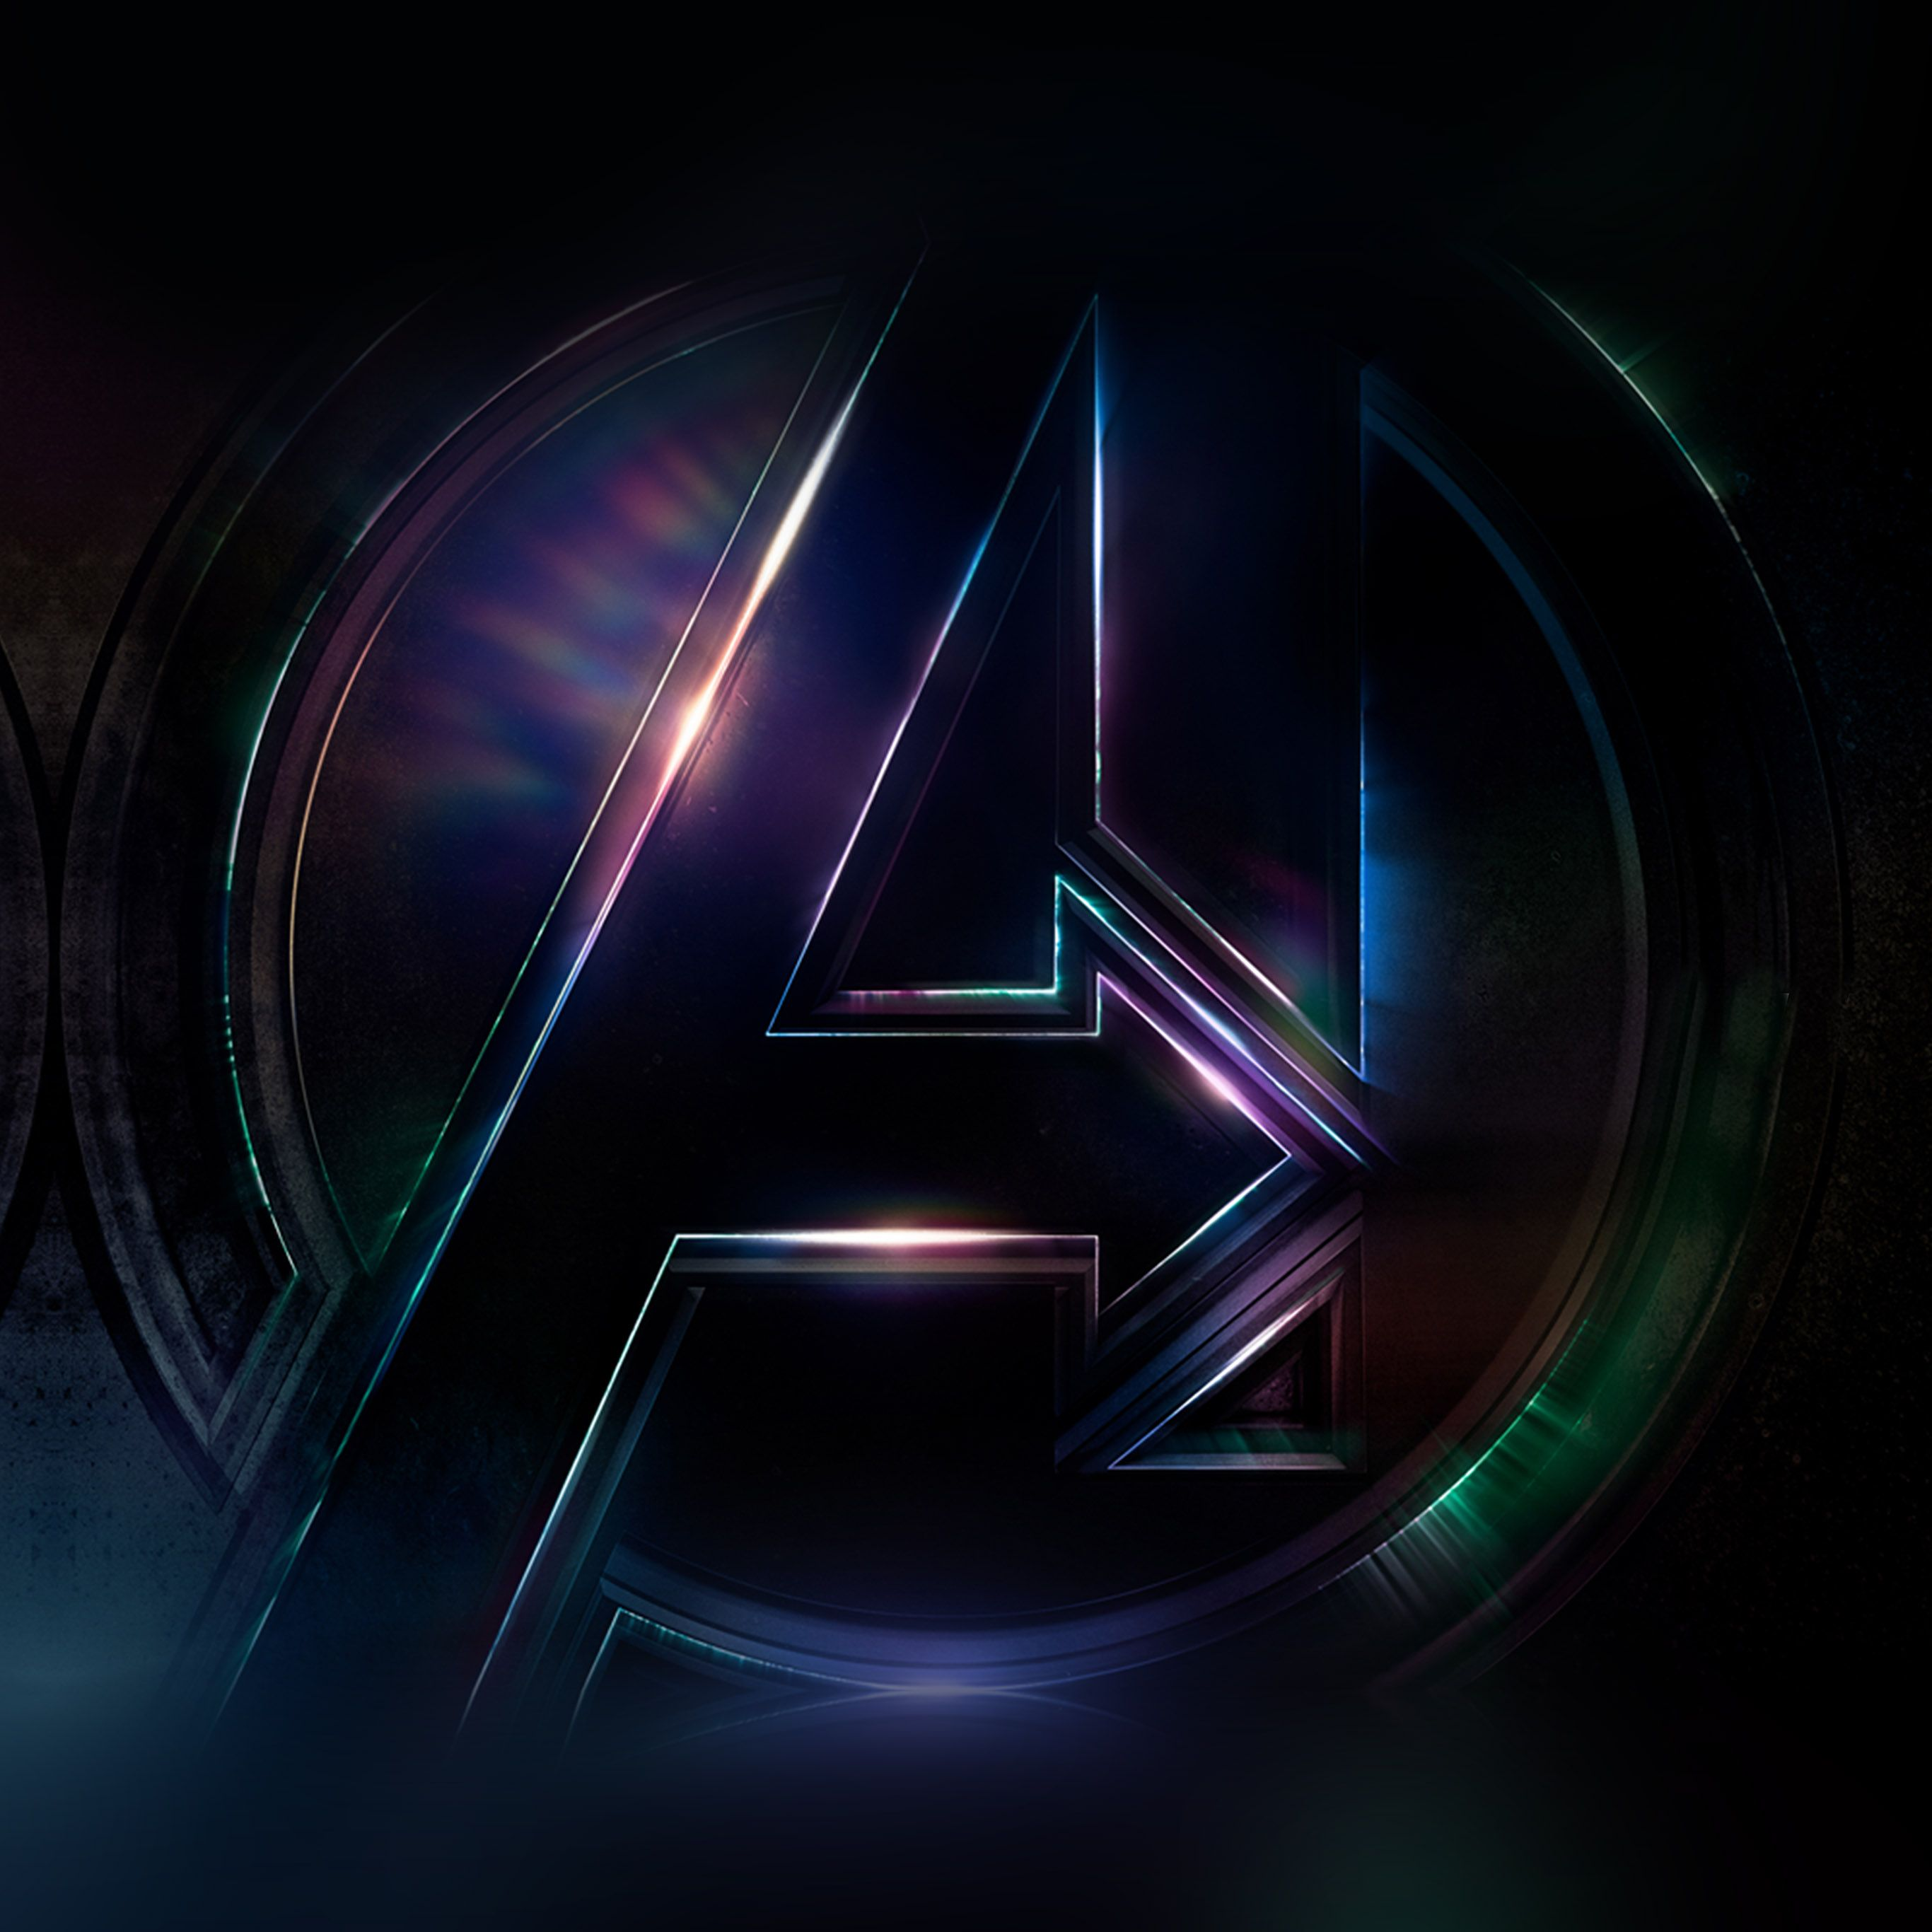 Marvel Avengers Logo Wallpapers Top Free Marvel Avengers Logo Backgrounds Wallpaperaccess